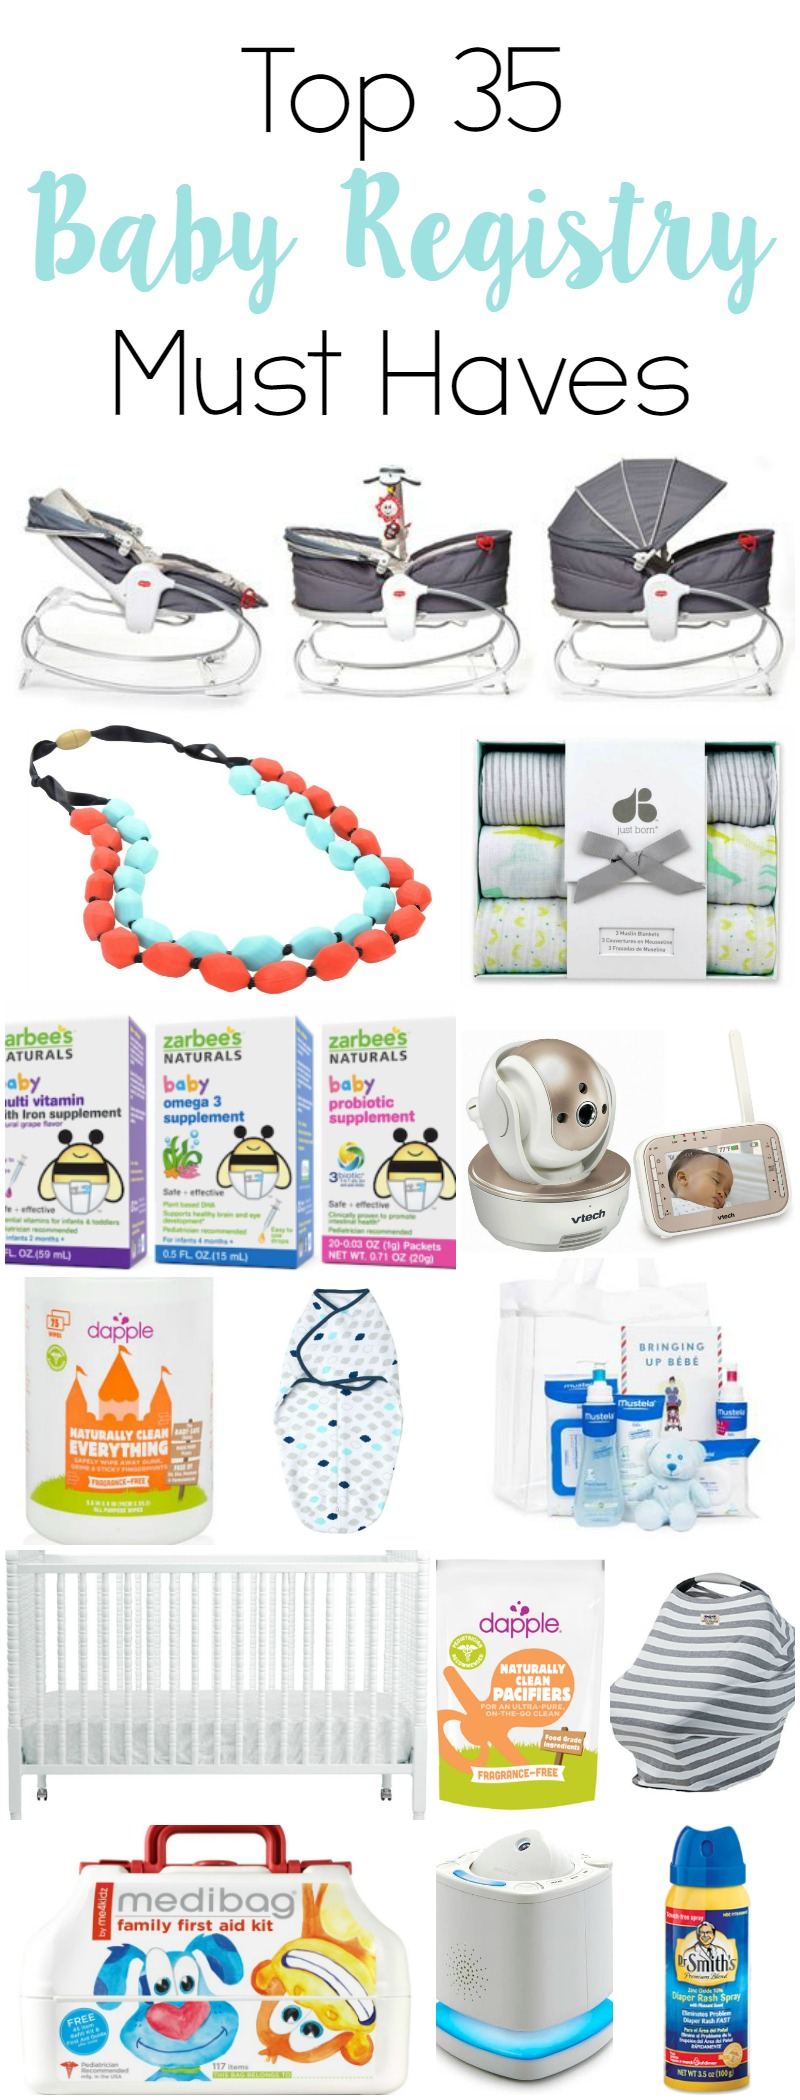 Top 35 Baby Registry Must Haves // Life Anchored ad